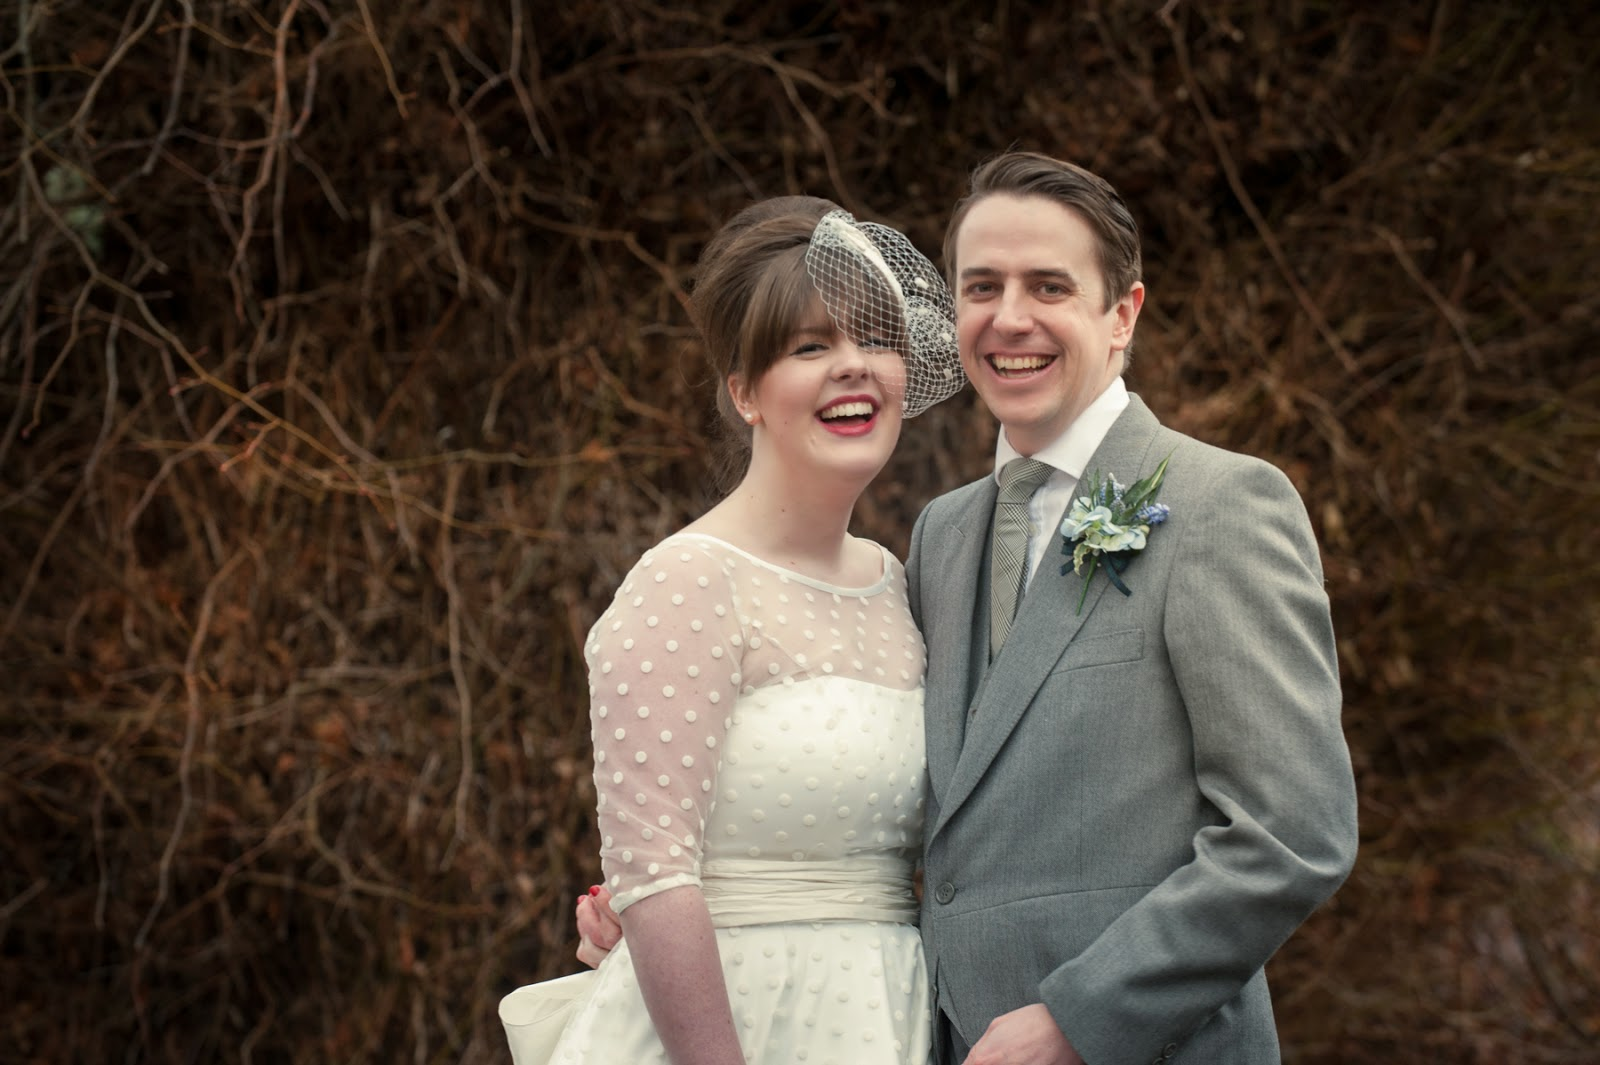 Bride and Groom laughing together at their vintage style wedding in the scottish highlands